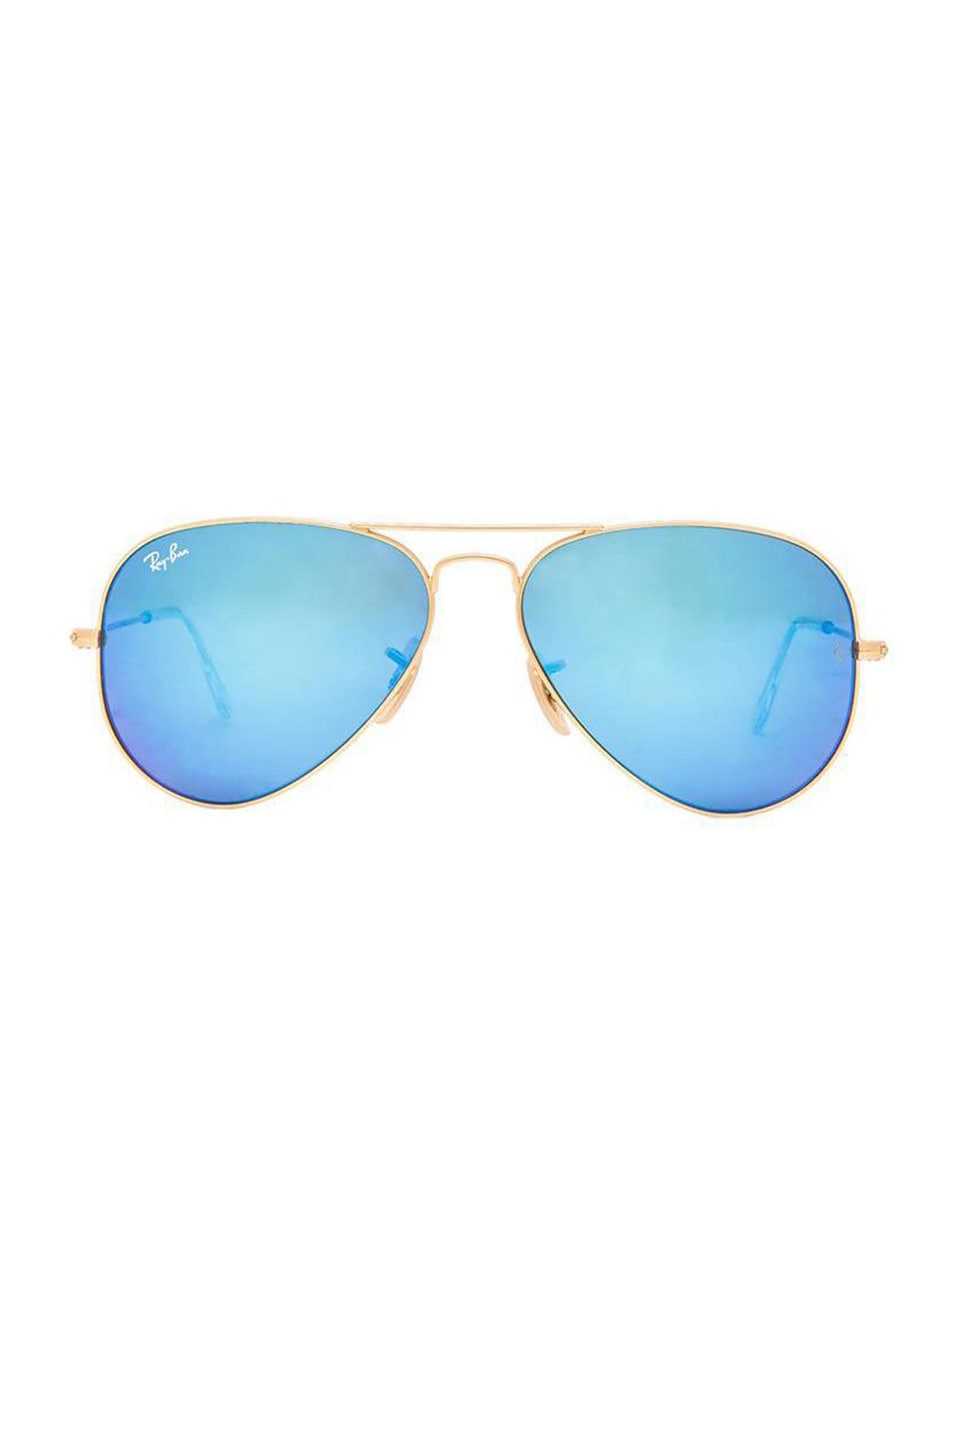 Ray-Ban Aviator Flash in Blue Flash